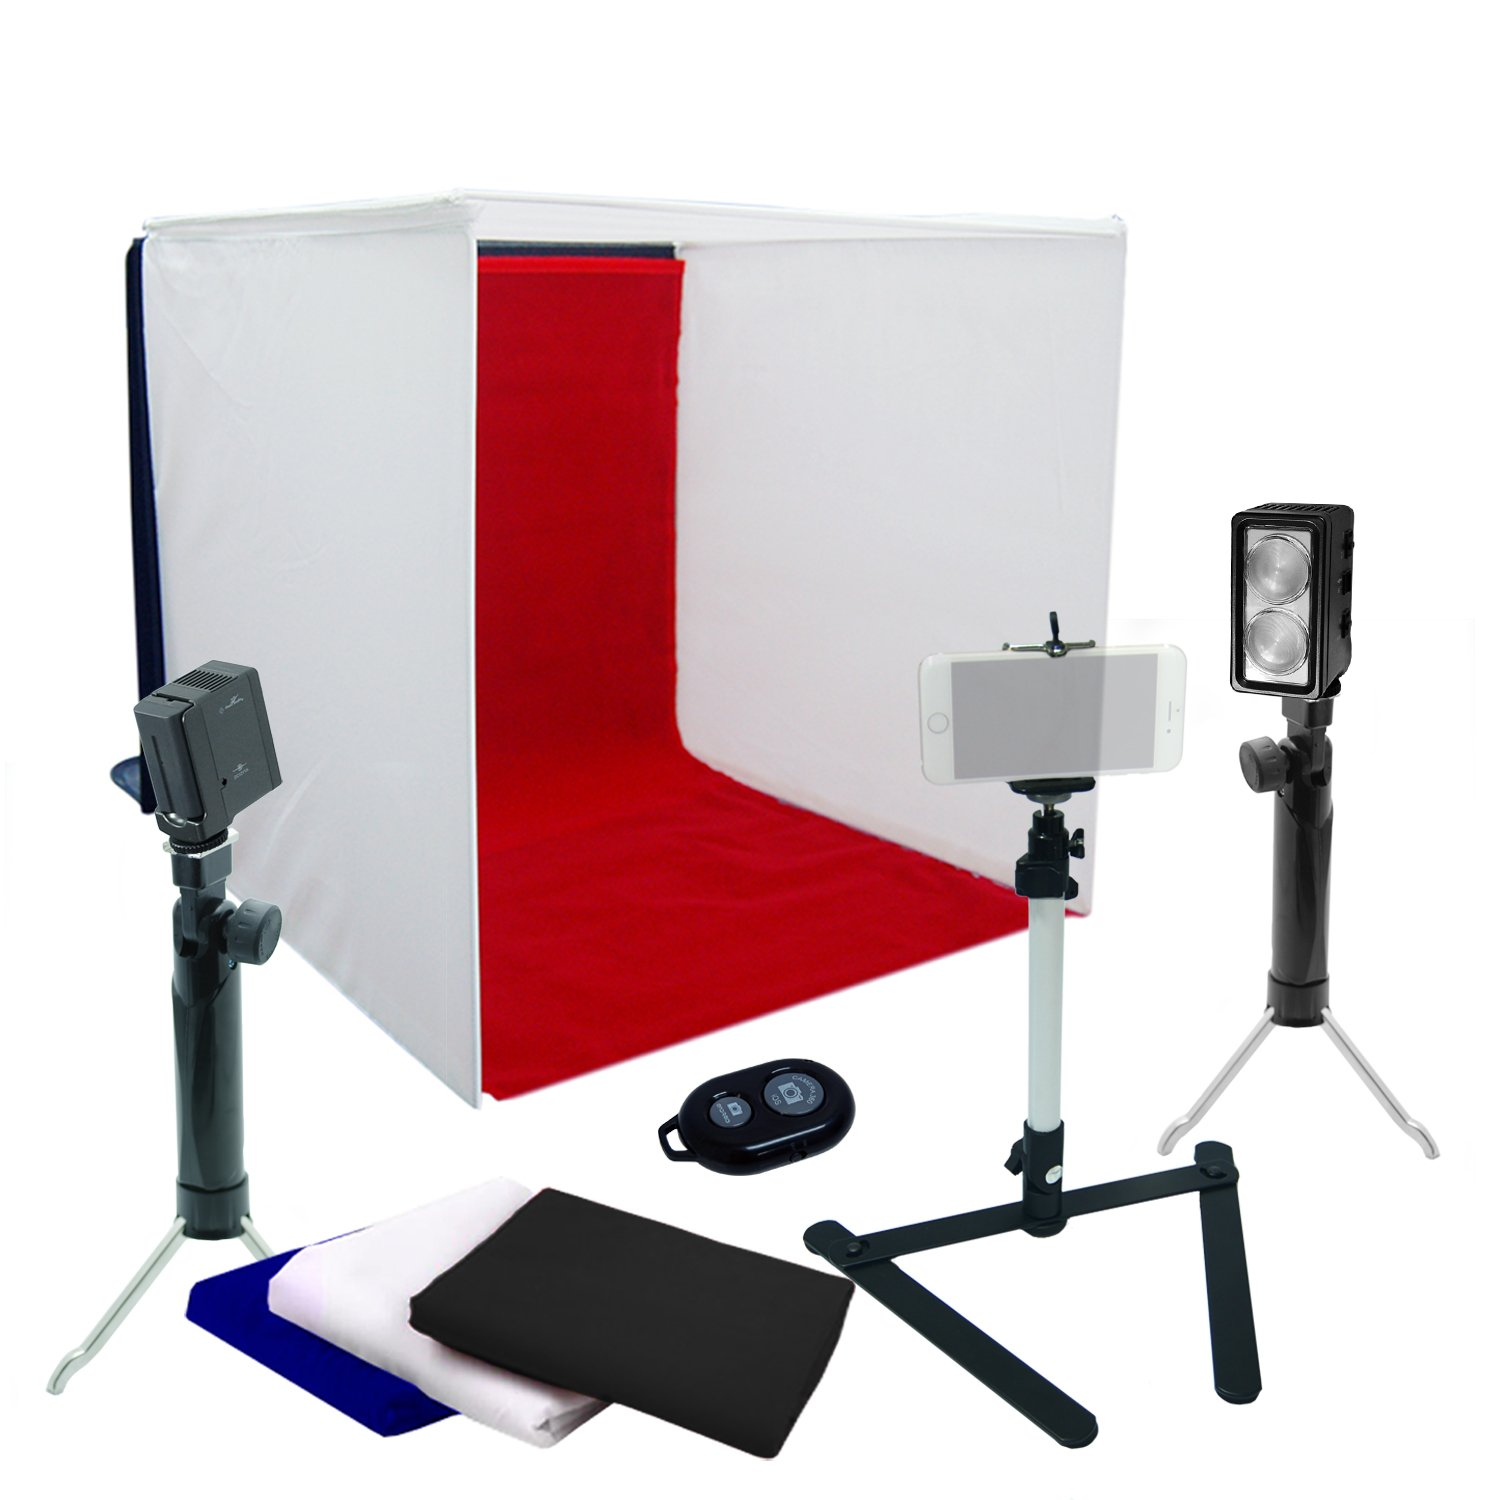 "LS Photography 16"" x 16"" Square Table Top Photo Shooting Tent Kit with LED Photo/Video Lights, Light Stand, Cell Phone Holder Adapter, and Bluetooth Remote Control Shutter, LGG767 by LS Photography"